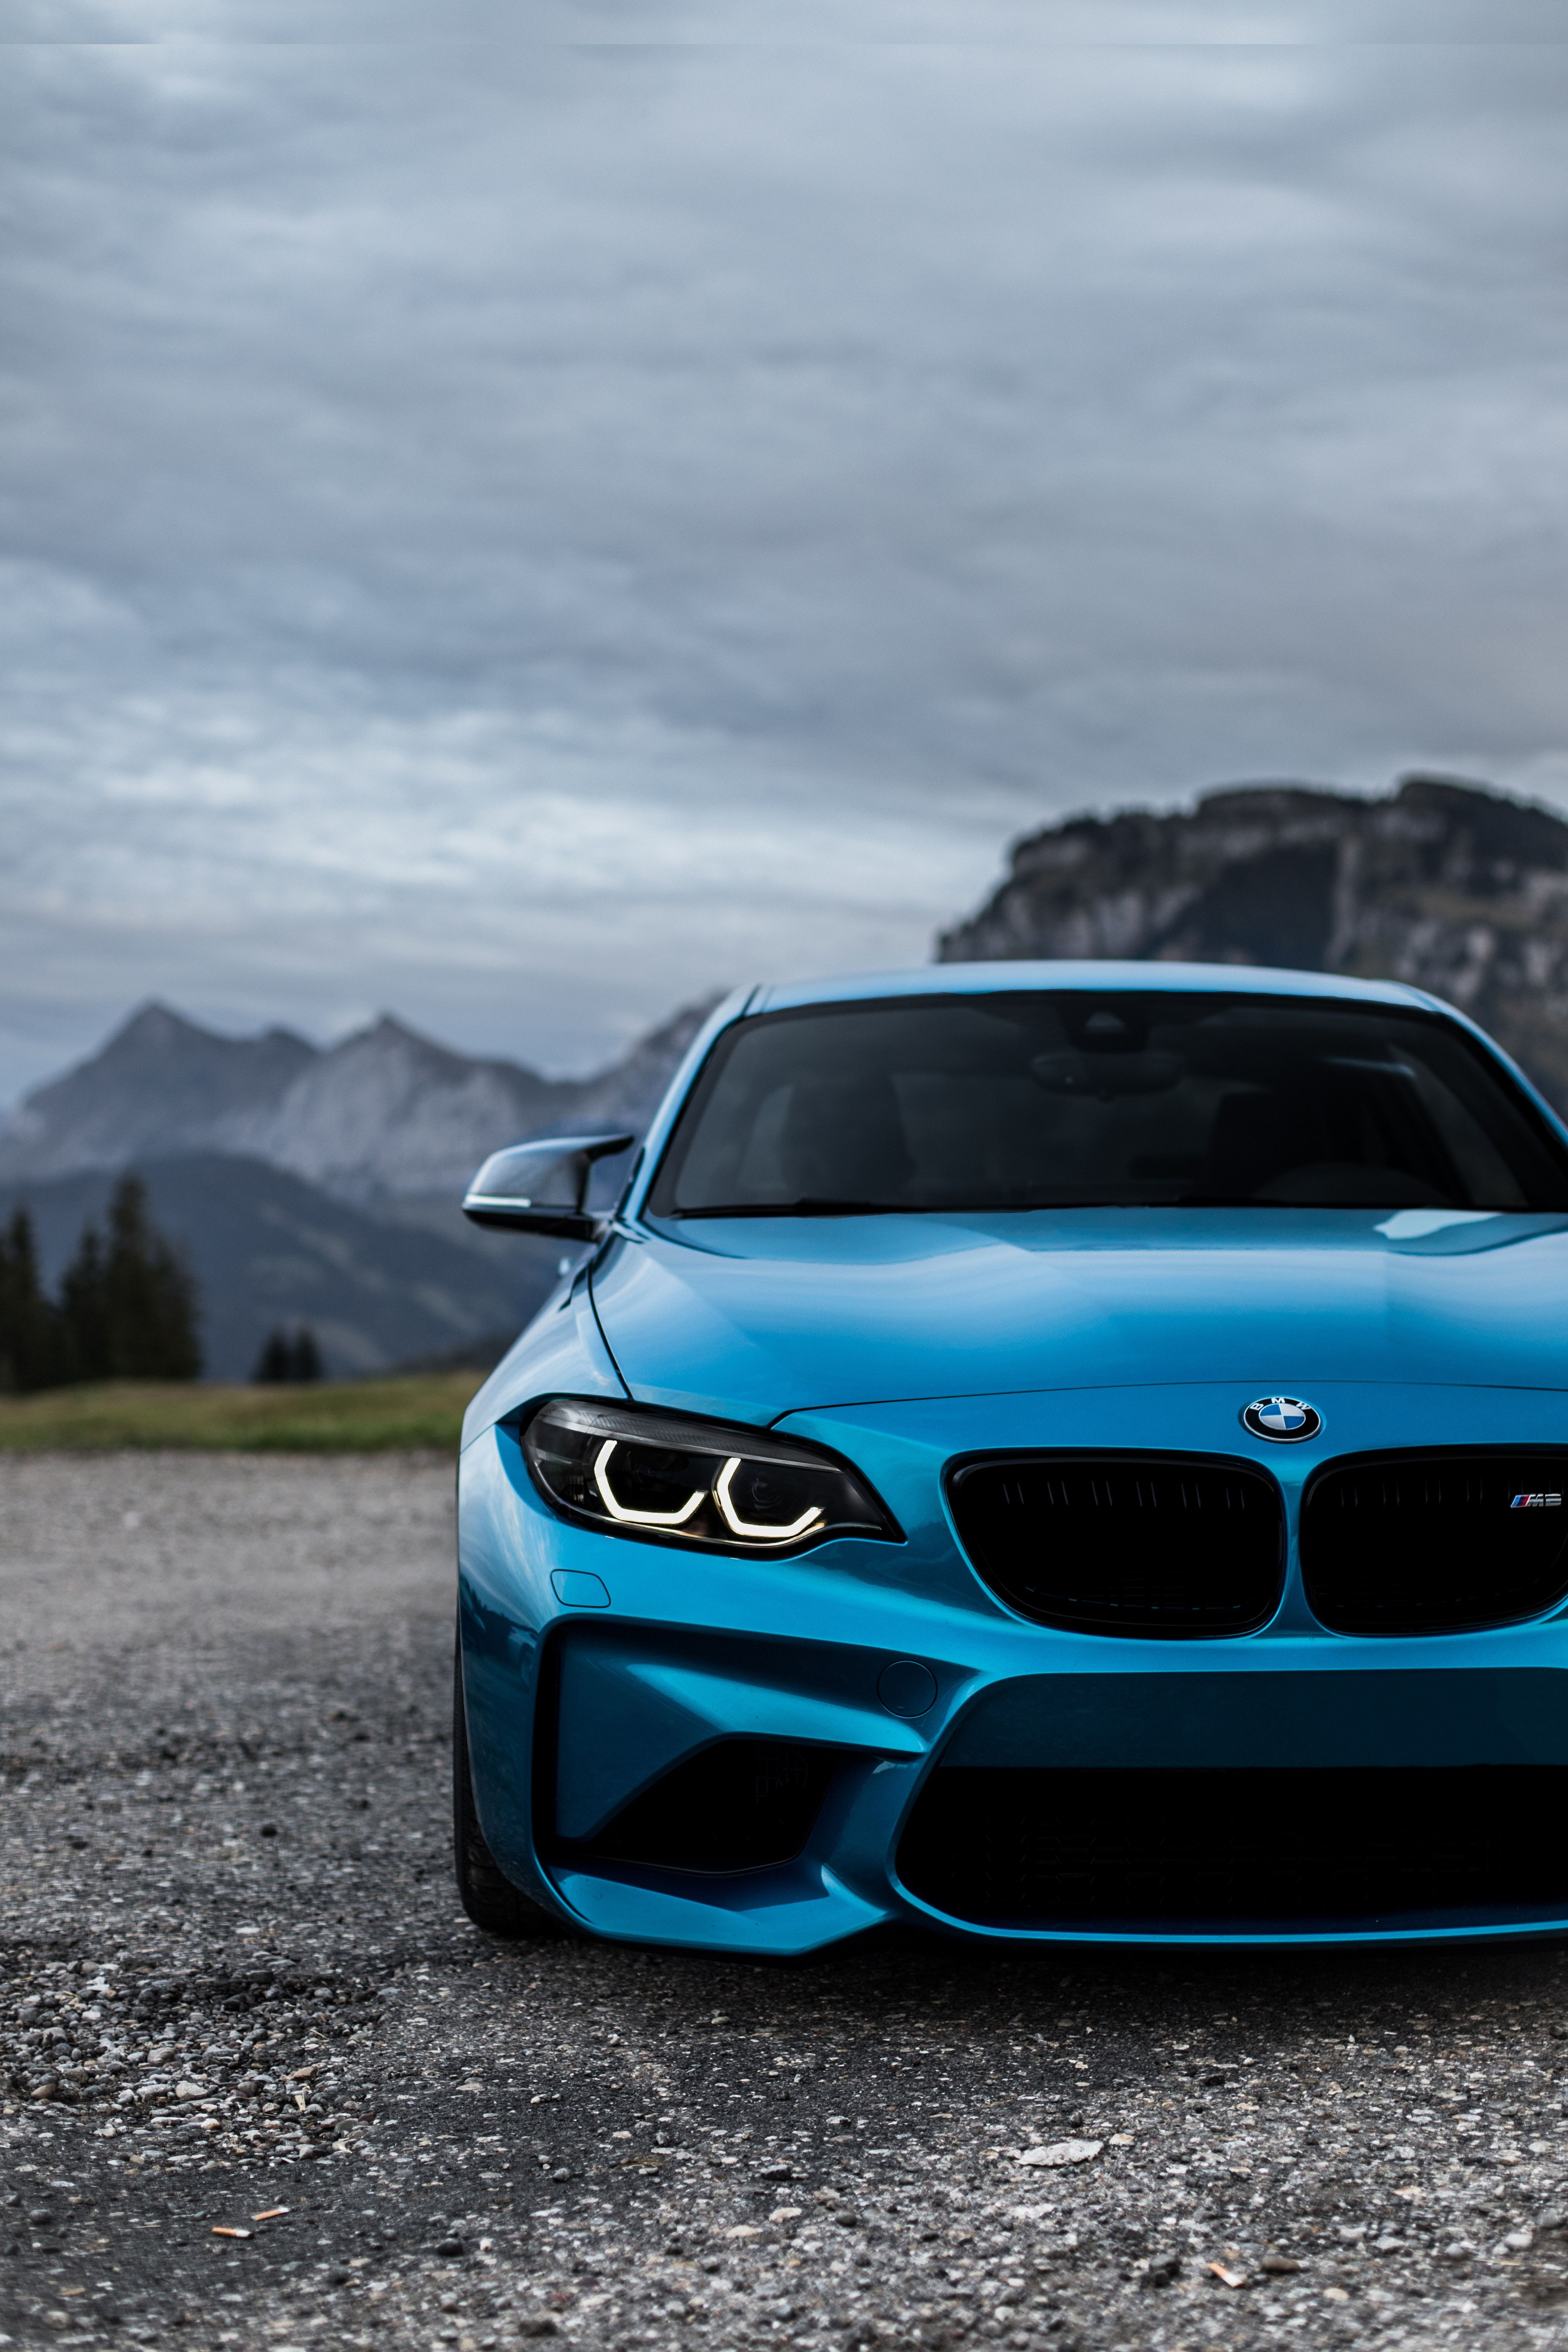 Pin By Lanmodo On Auto Passion Bmw Iphone Wallpaper Bmw